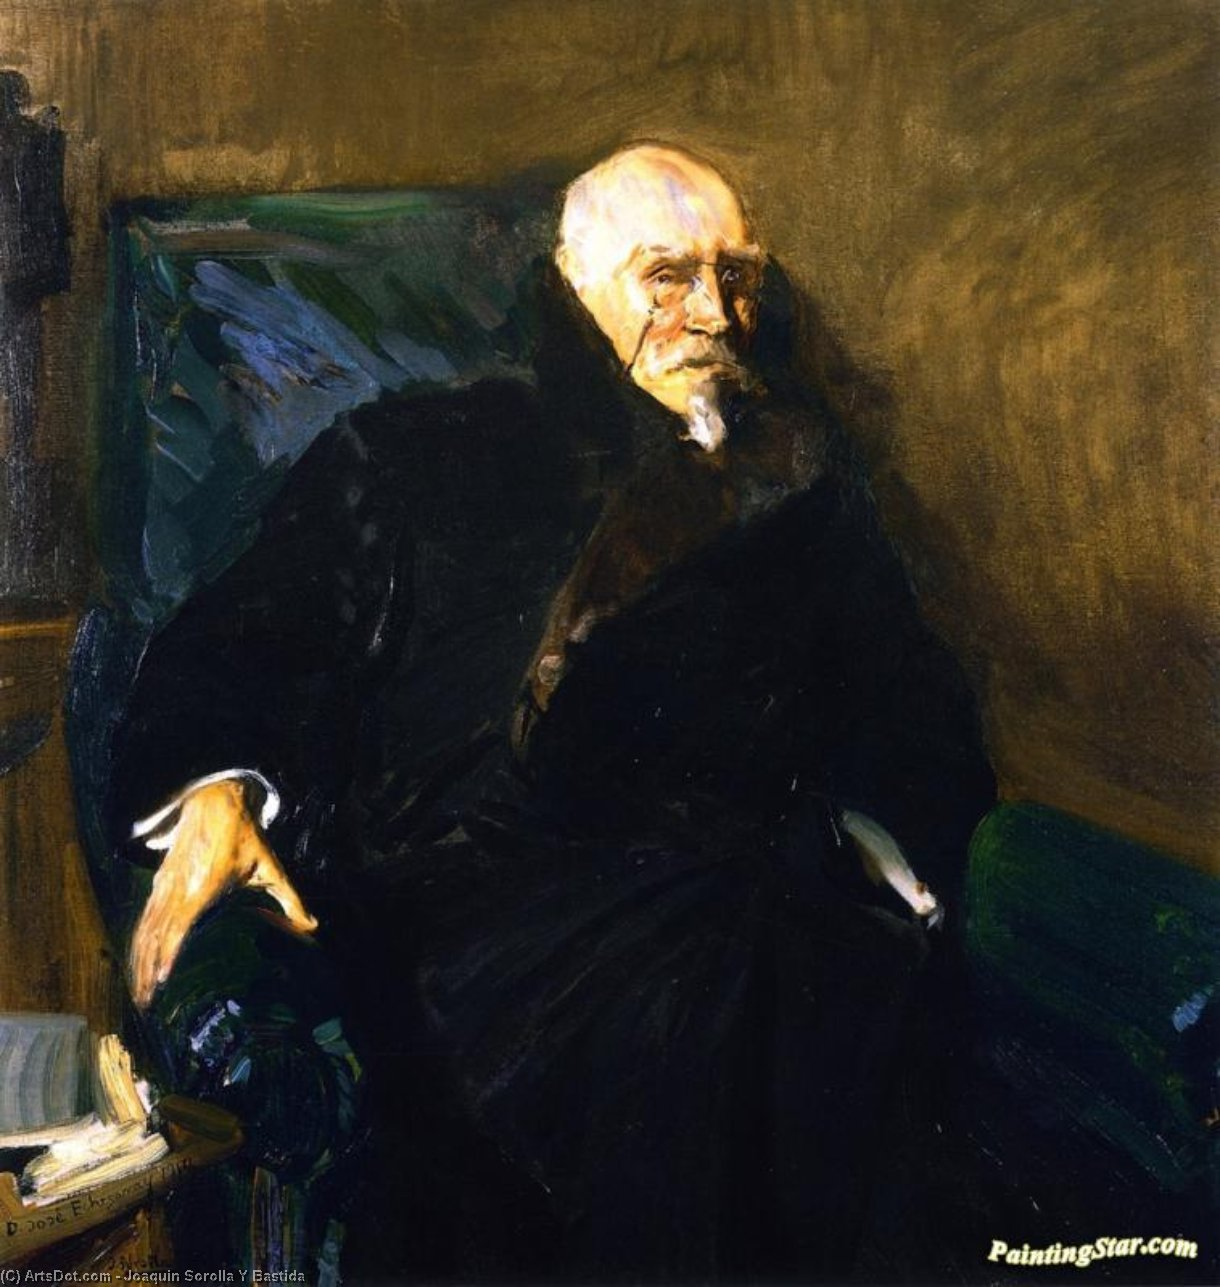 José Echegaray, Oil On Canvas by Joaquin Sorolla Y Bastida (1863-1923, Spain)